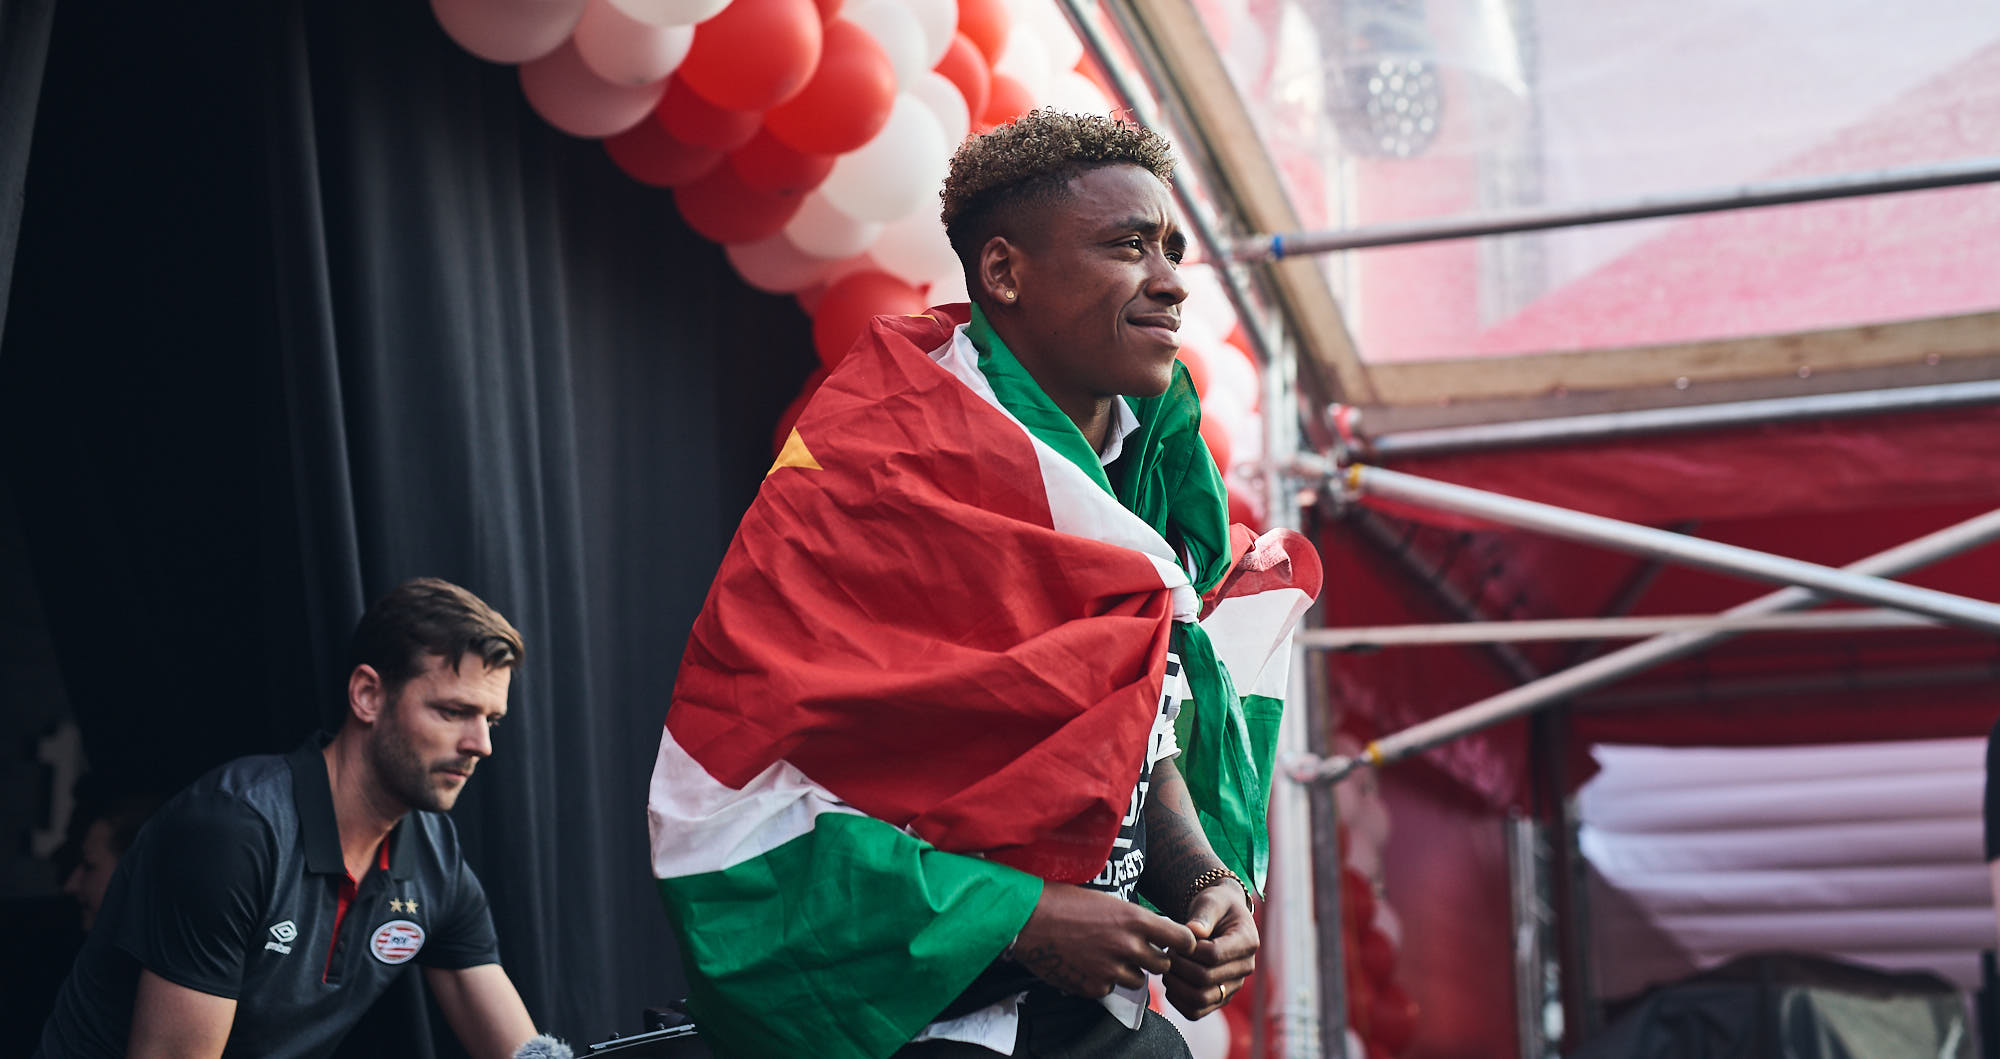 PSV winger Steven Bergwijn wrapped in a Suriname flag